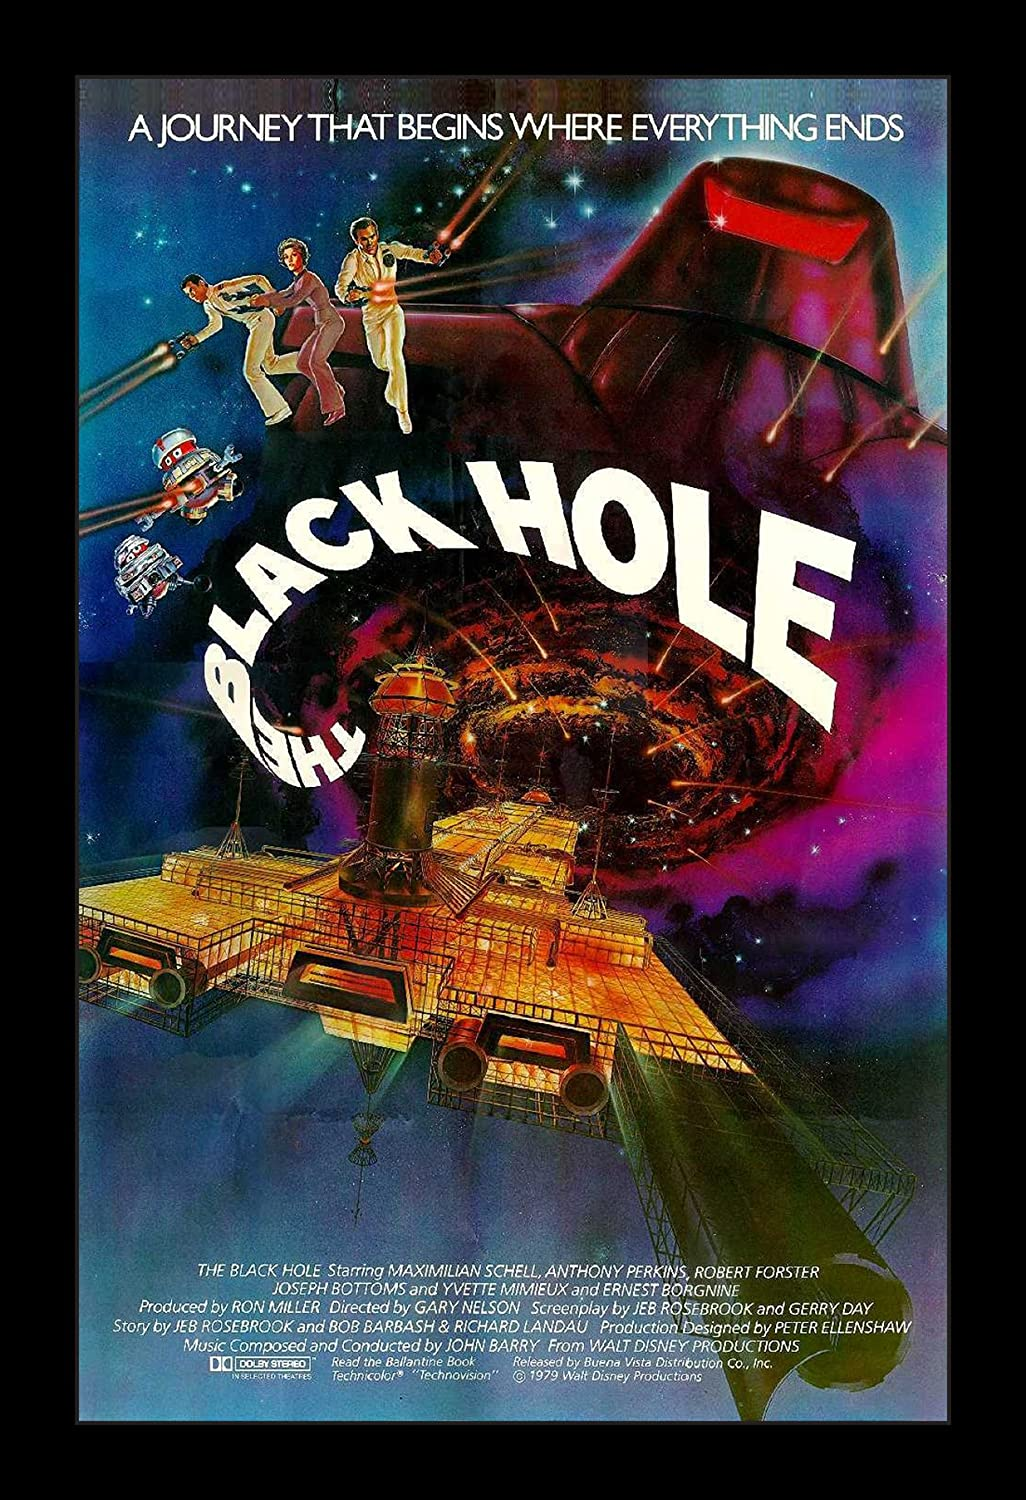 Wallspace The Black Hole - 11x17 Framed Movie Poster